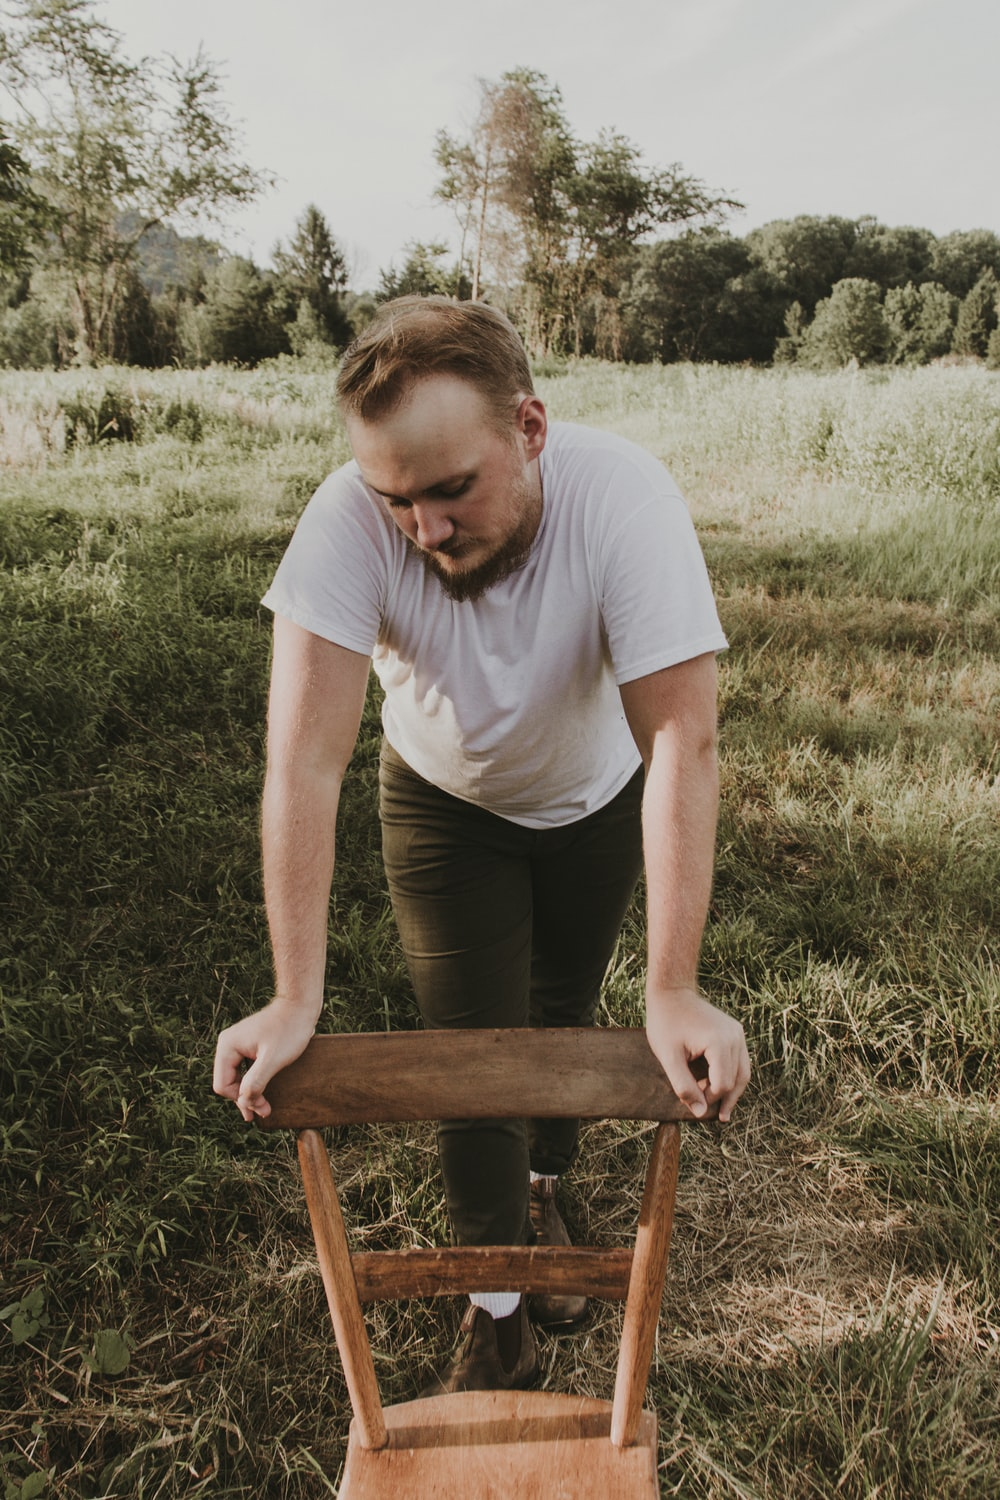 man in white crew neck t-shirt sitting on brown wooden chair during daytime